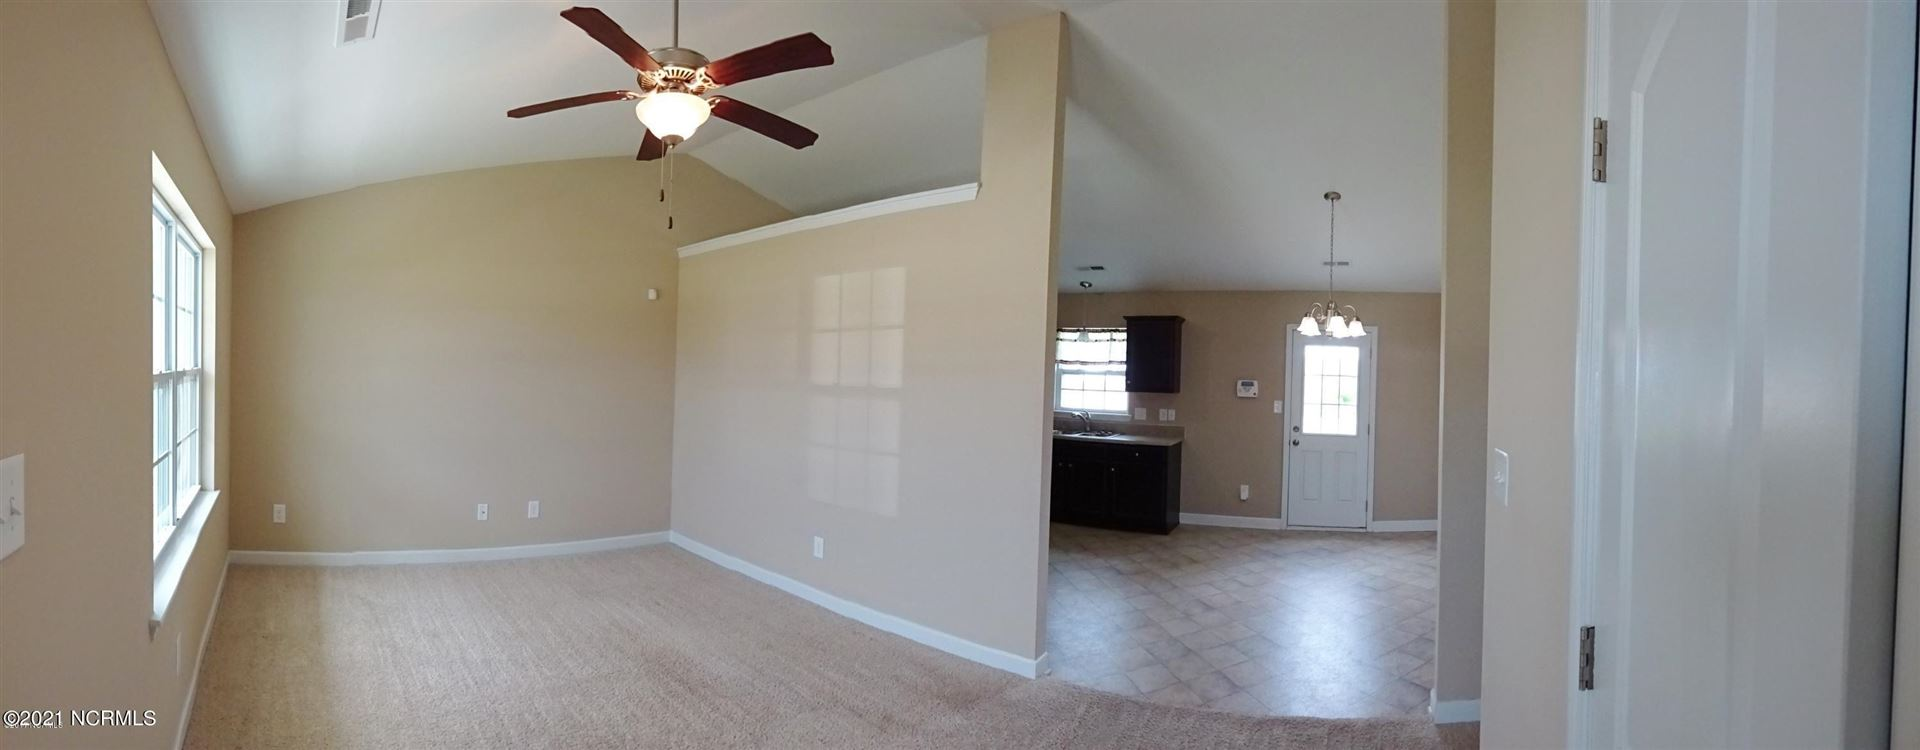 Photo of 504 Hester Court, Richlands, NC 28574 (MLS # 100286952)